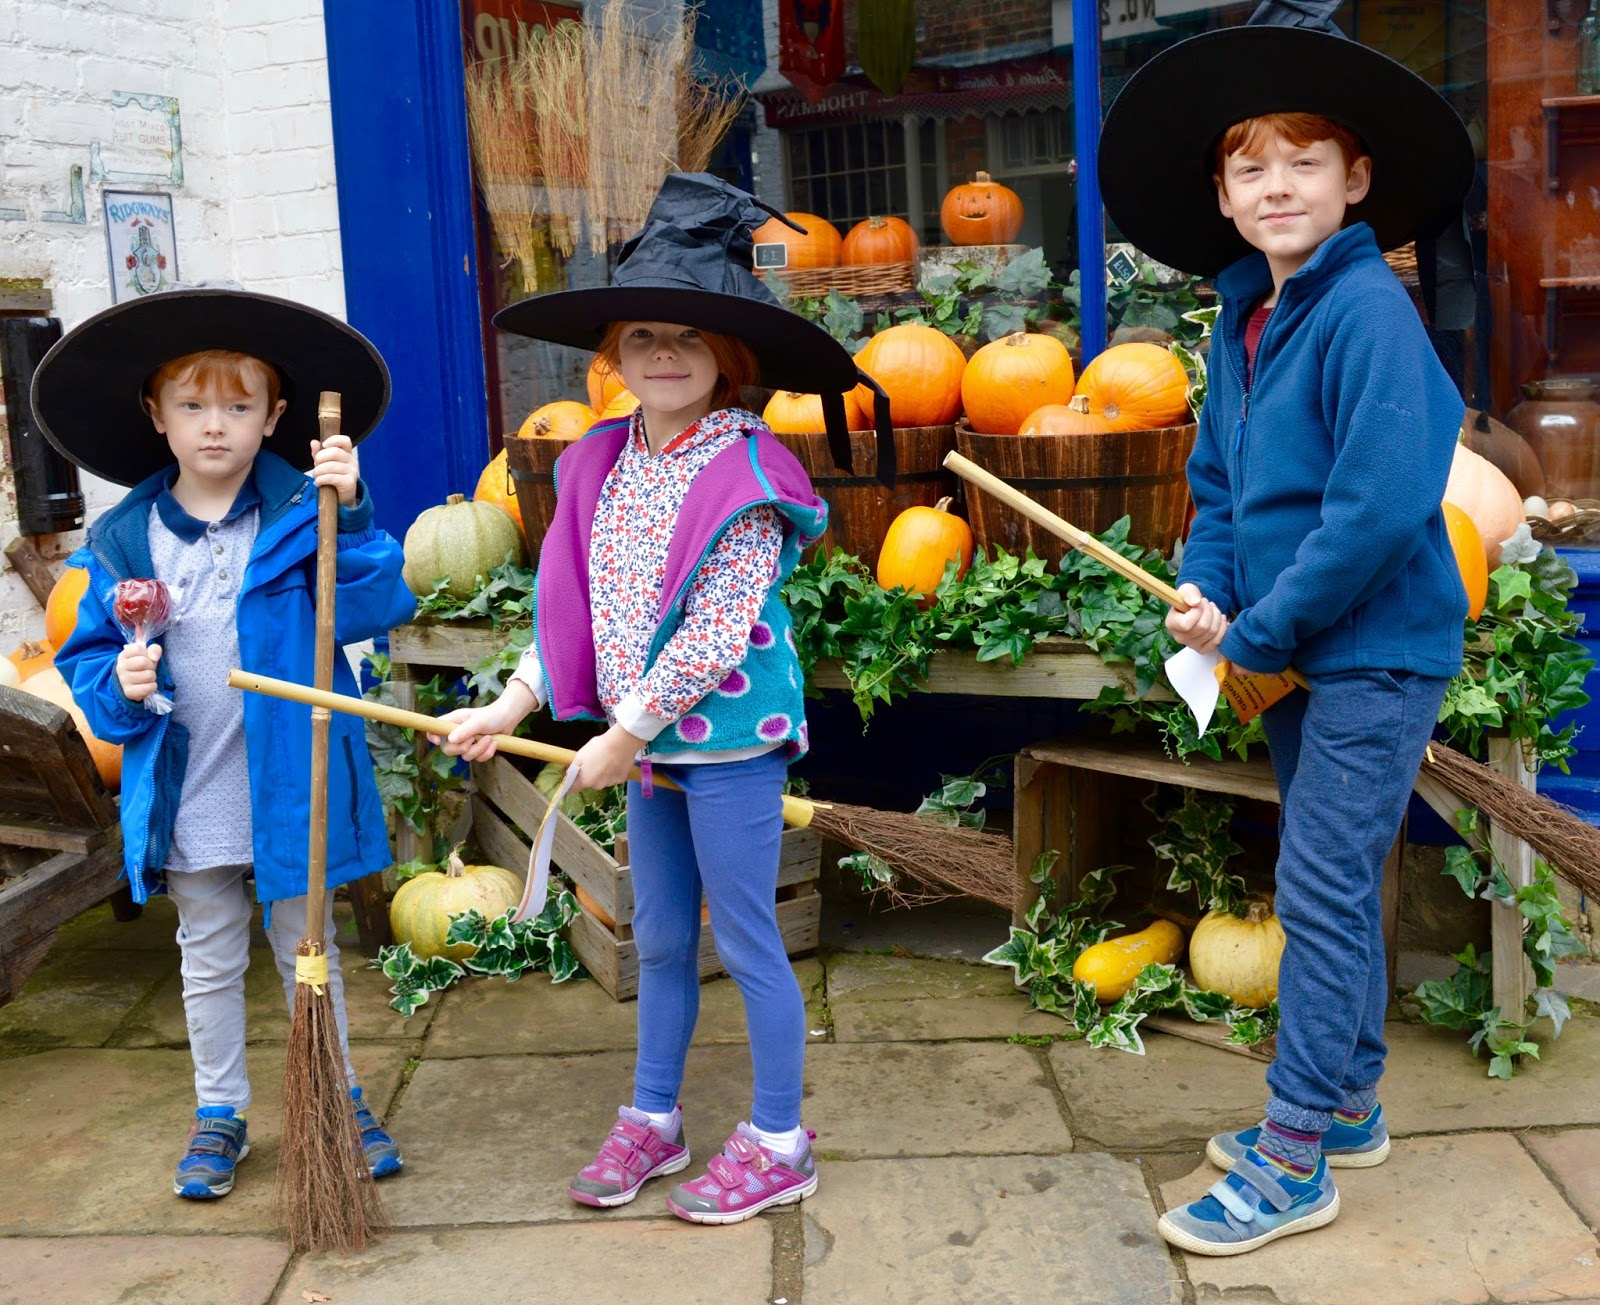 Half Term Hocus Pocus at Preston Park | The North East's very own Diagon Alley